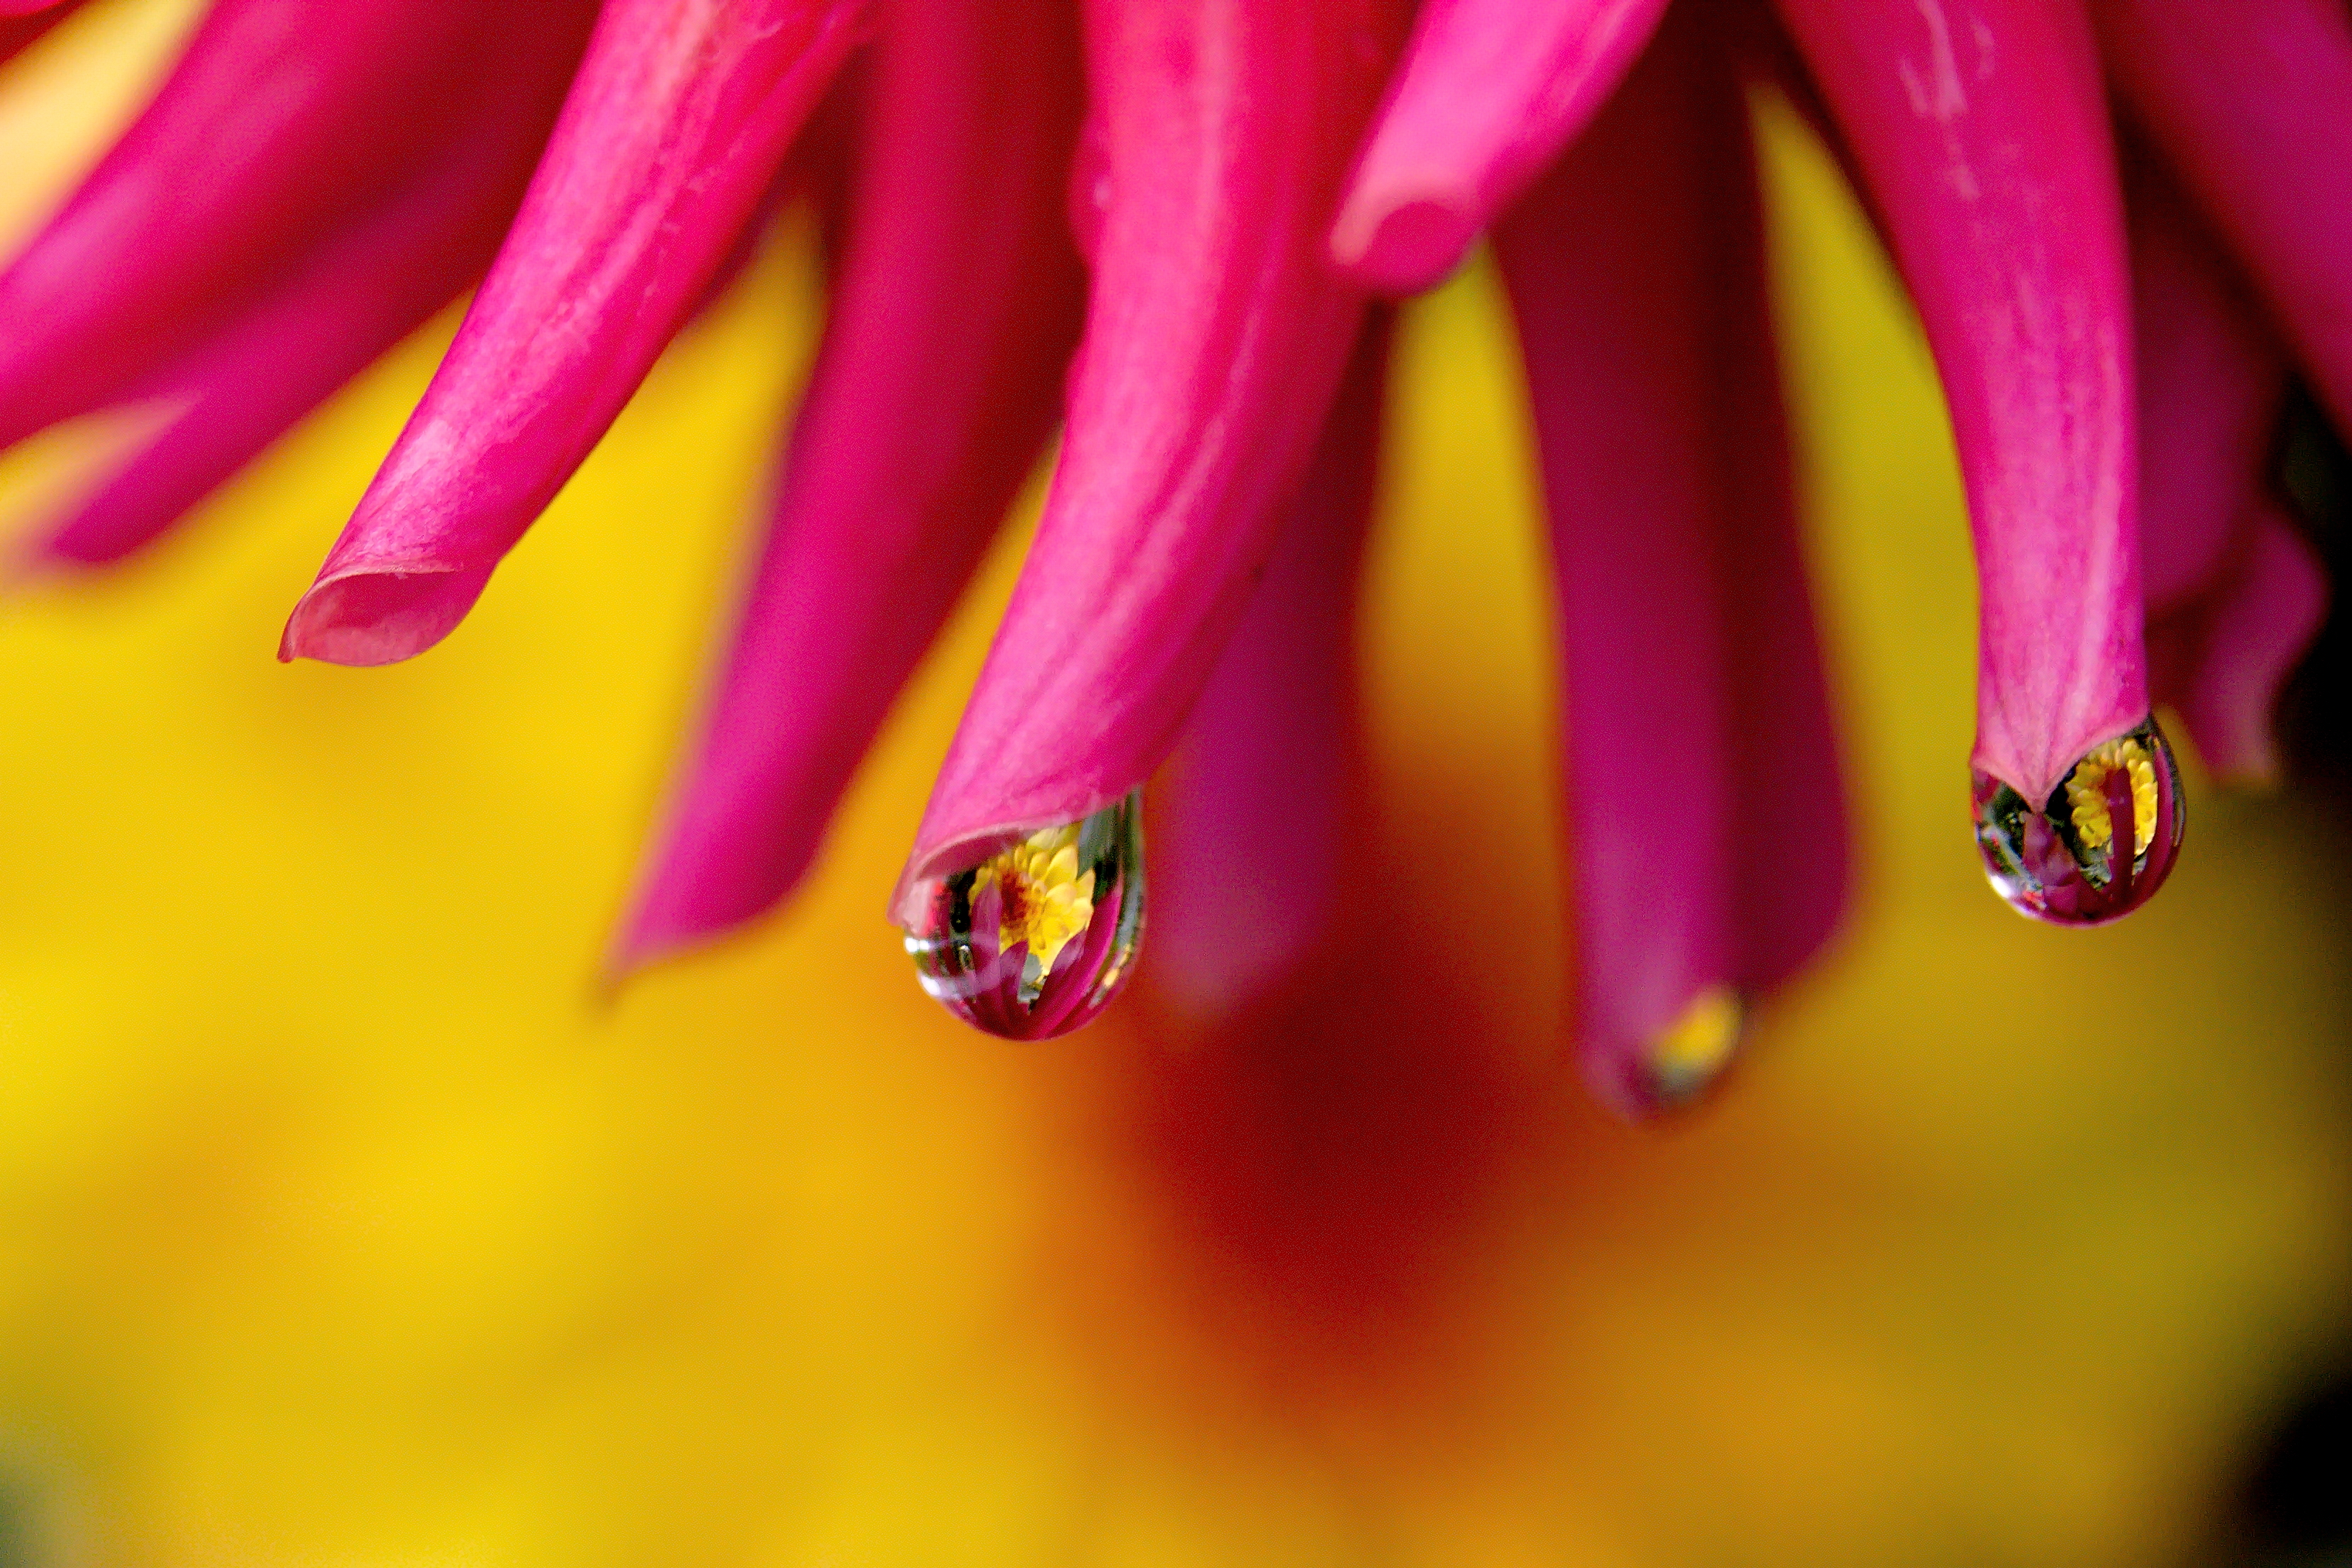 Water Drops on Flower